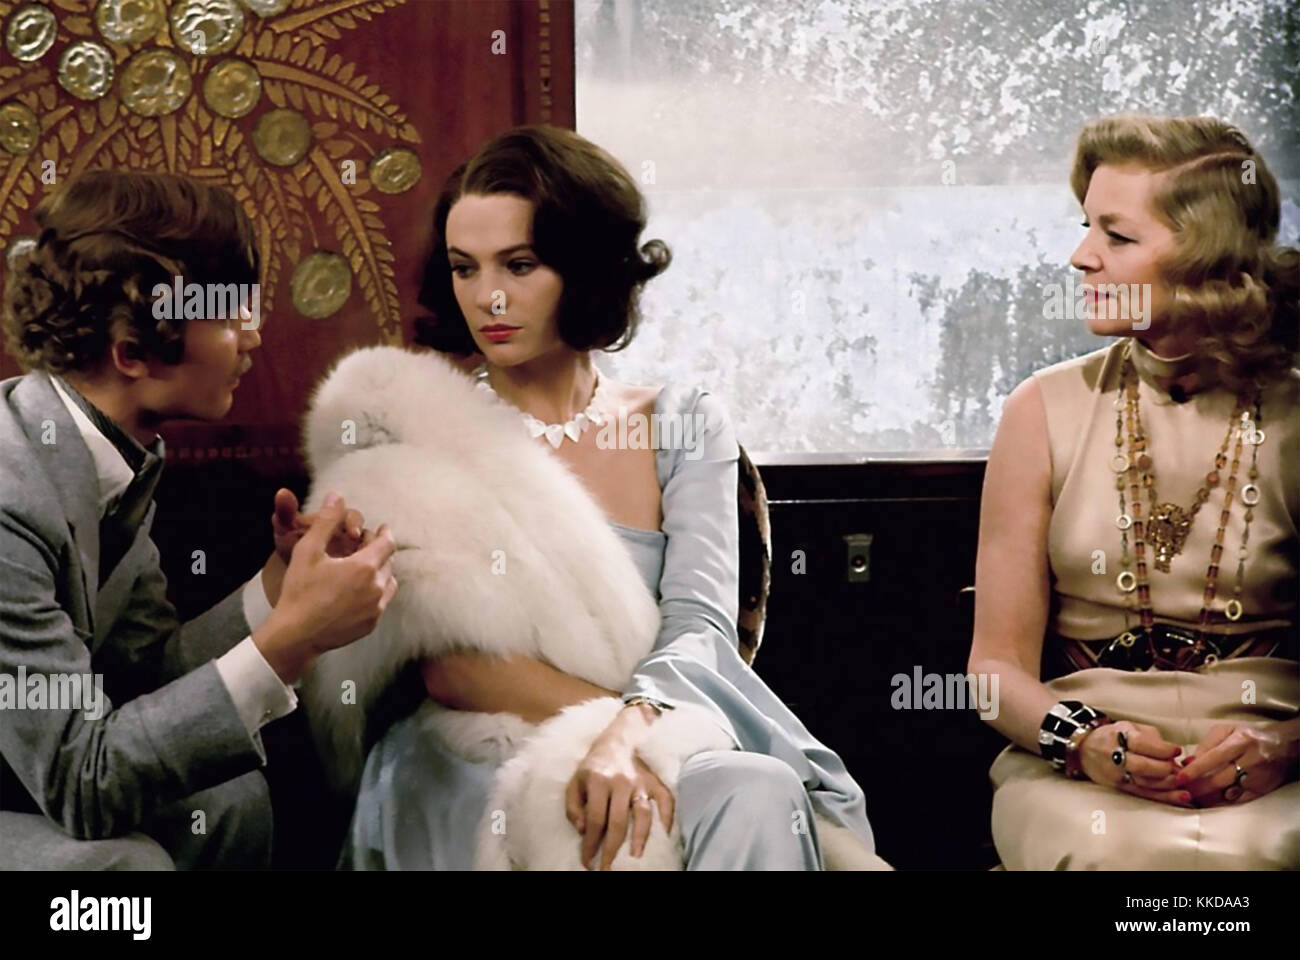 MURDER ON THE ORIENT EXPRESS 1974 EMI Films production with from left: Michael York (Count Andrenyl) Jacqueline - Stock Image